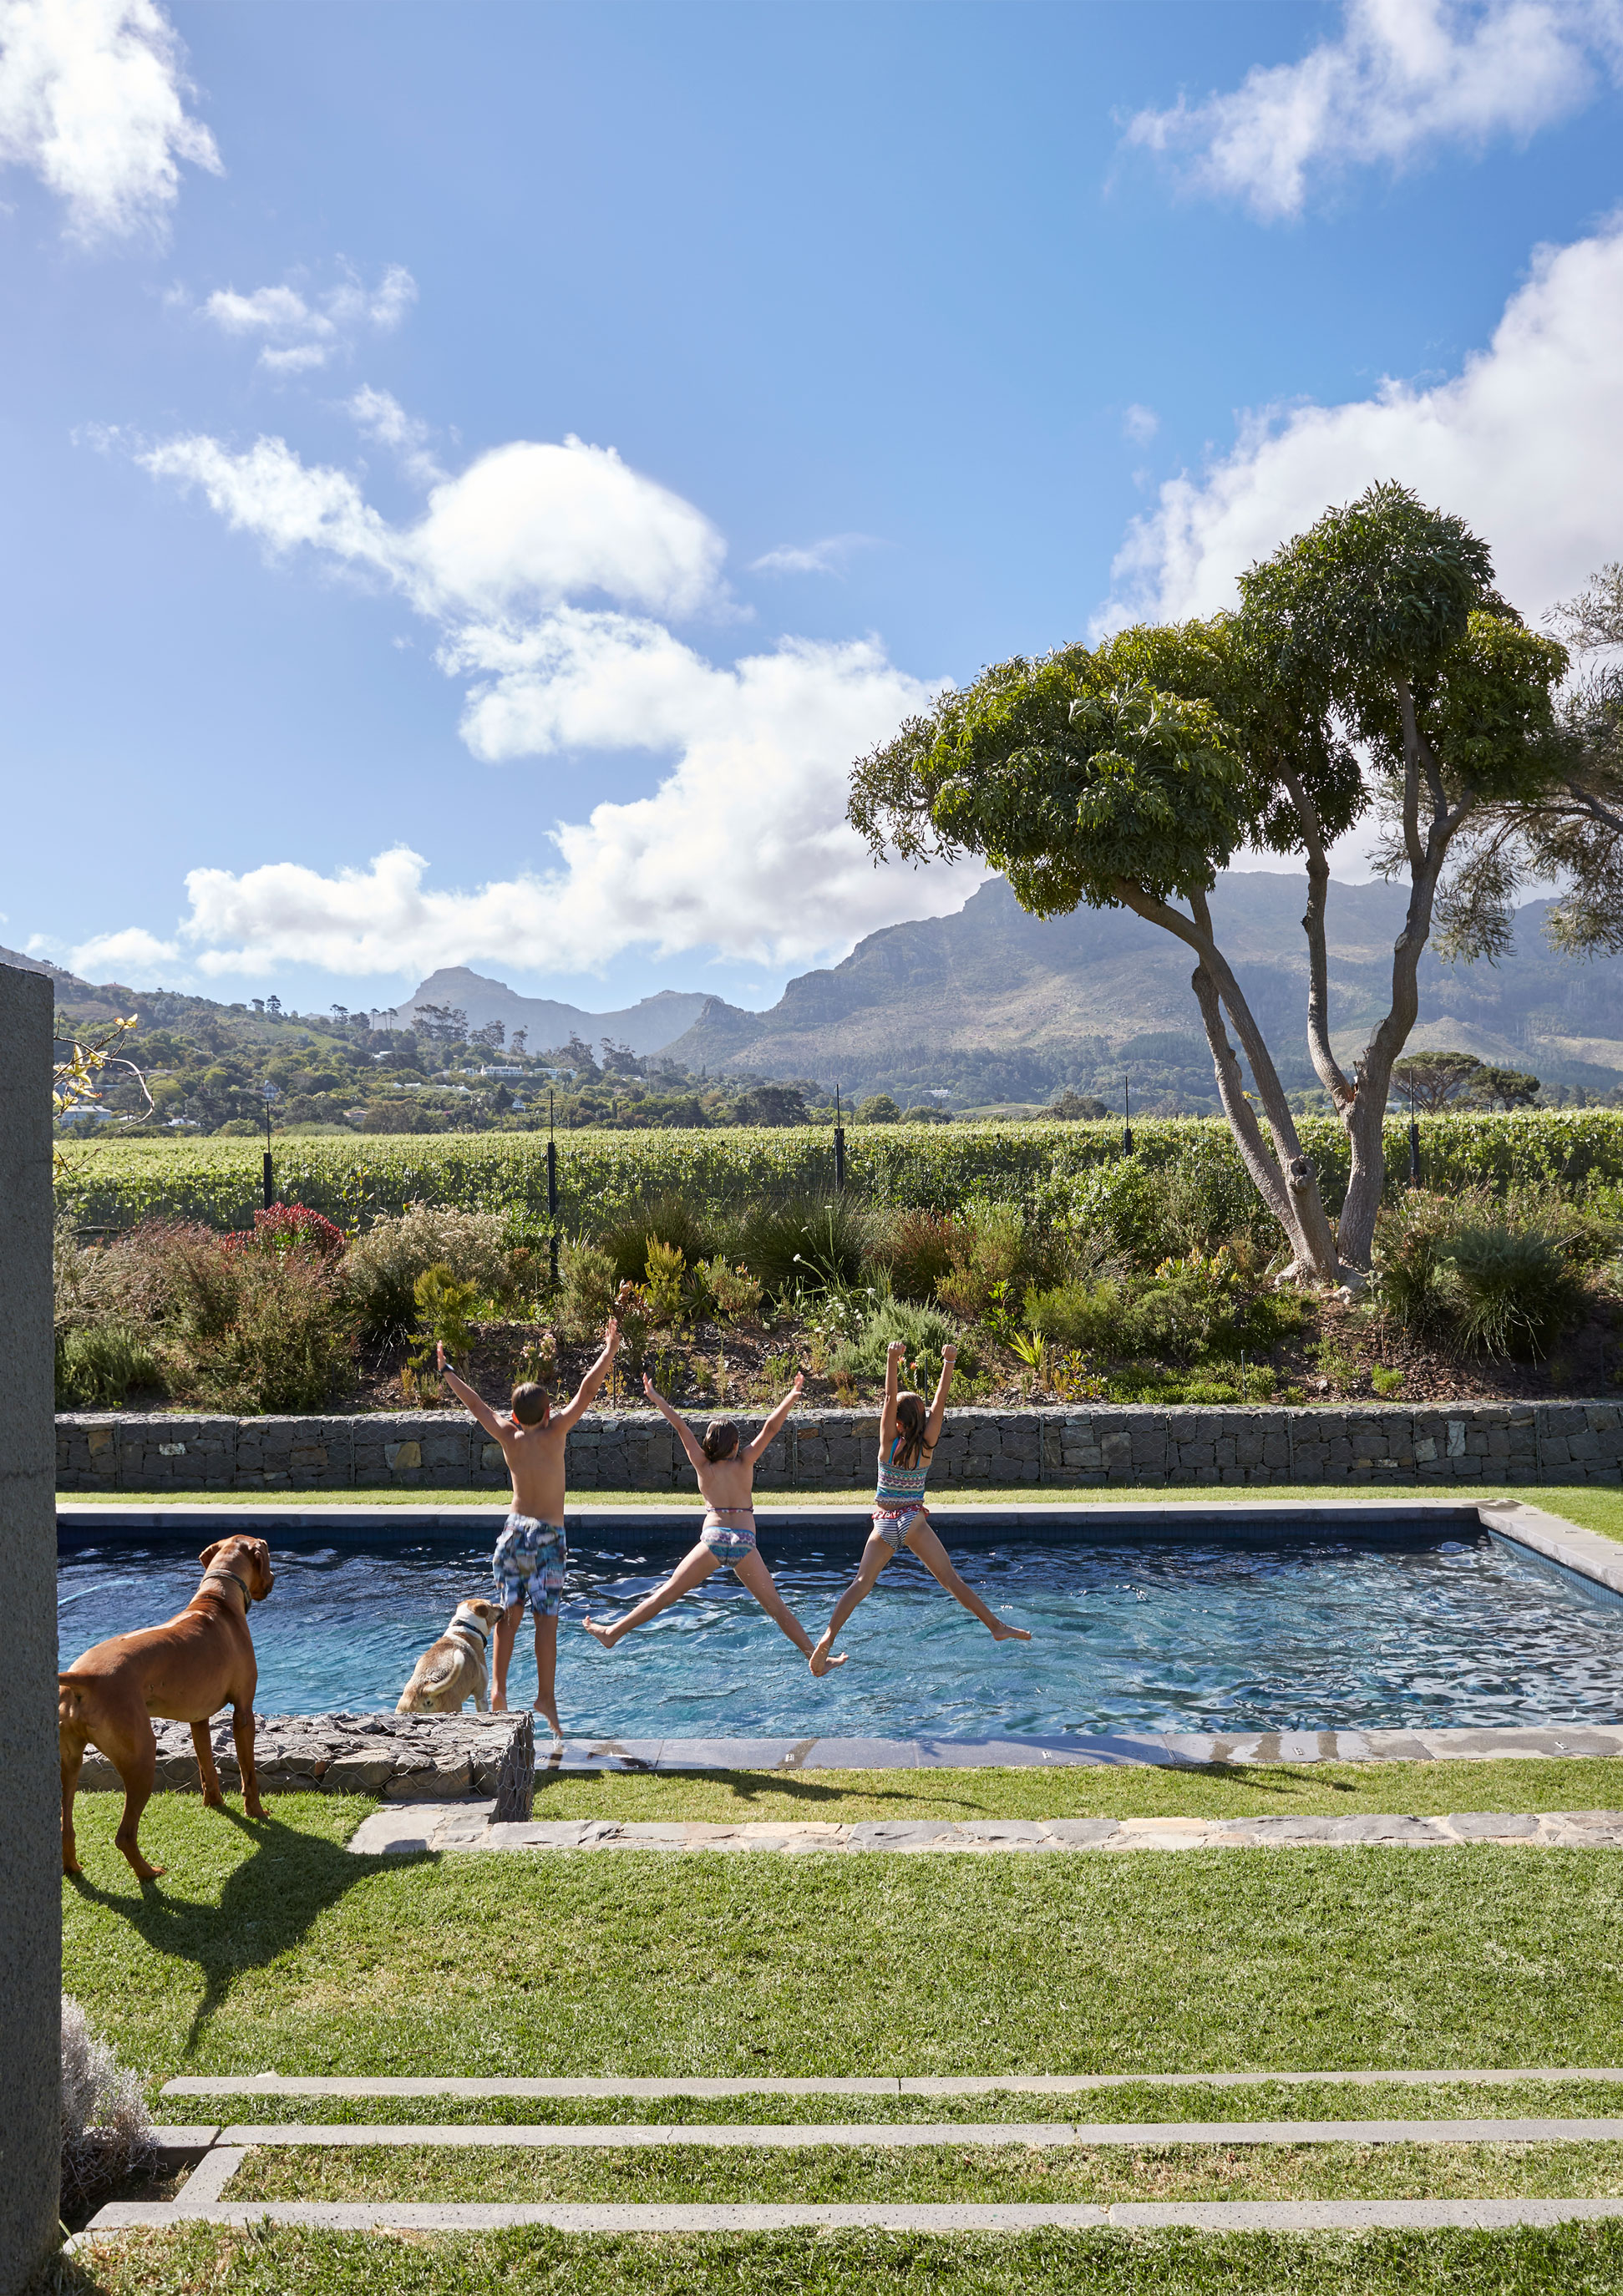 The pergola between the swimming pool and deck creates another outdoor entertainment area, and a further architectural transition between house and garden. The Bresler children, Jonty, Hannah and Ollie enjoy using it as a climbing frame. The fynbos garden along the 130-meter border between the Bresler's property and the Groot Constantia vineyard replaced what was originally a screen of trees and tall bushes. 